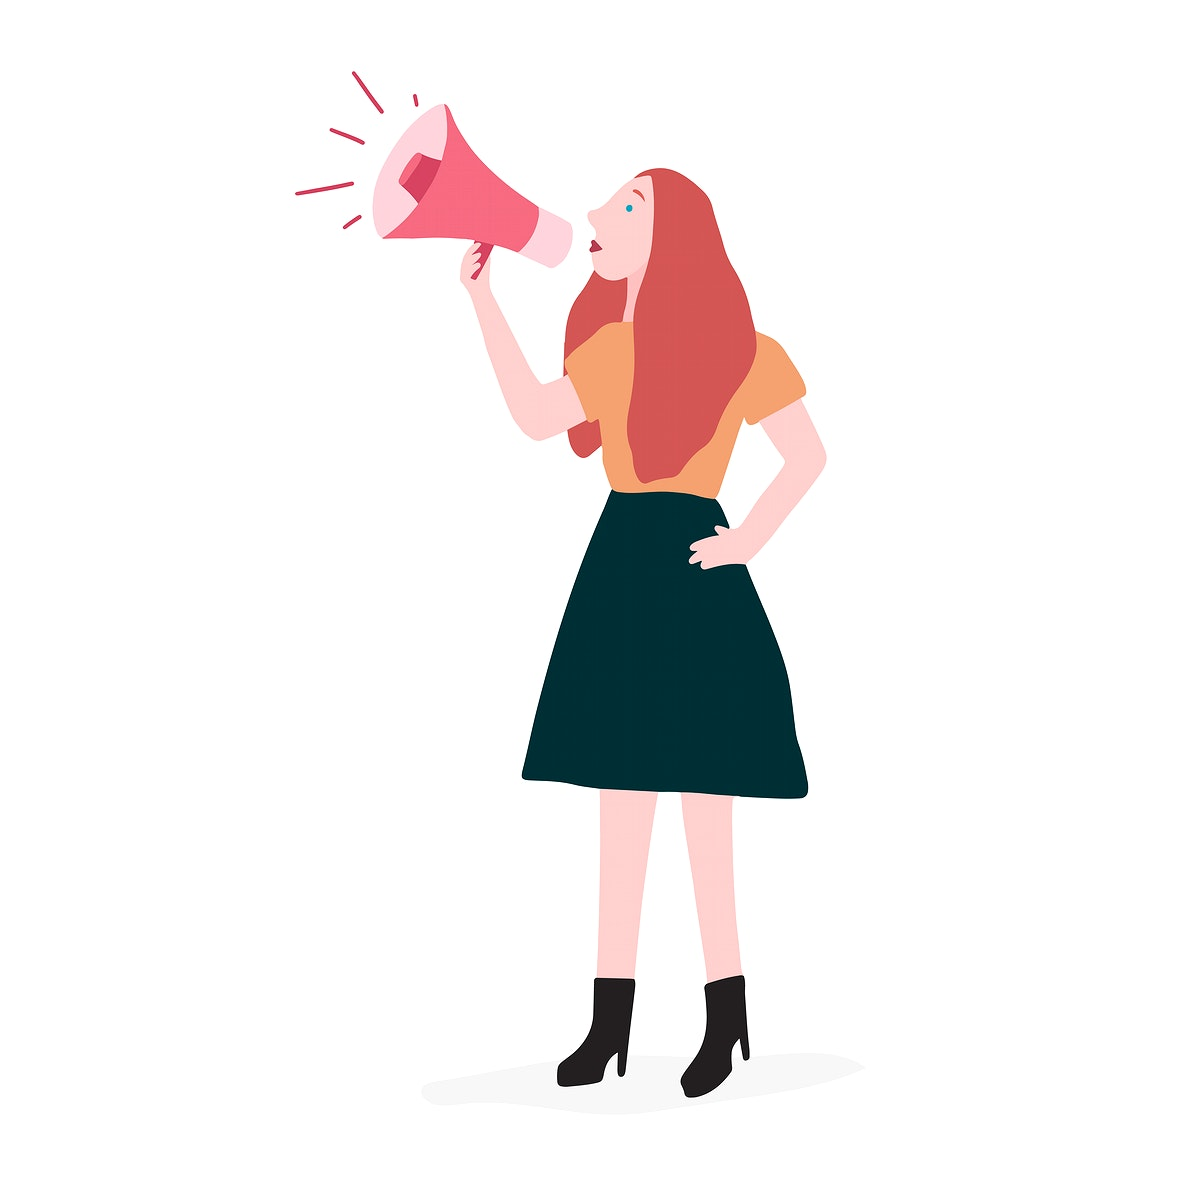 Strong woman shouting out her message vector